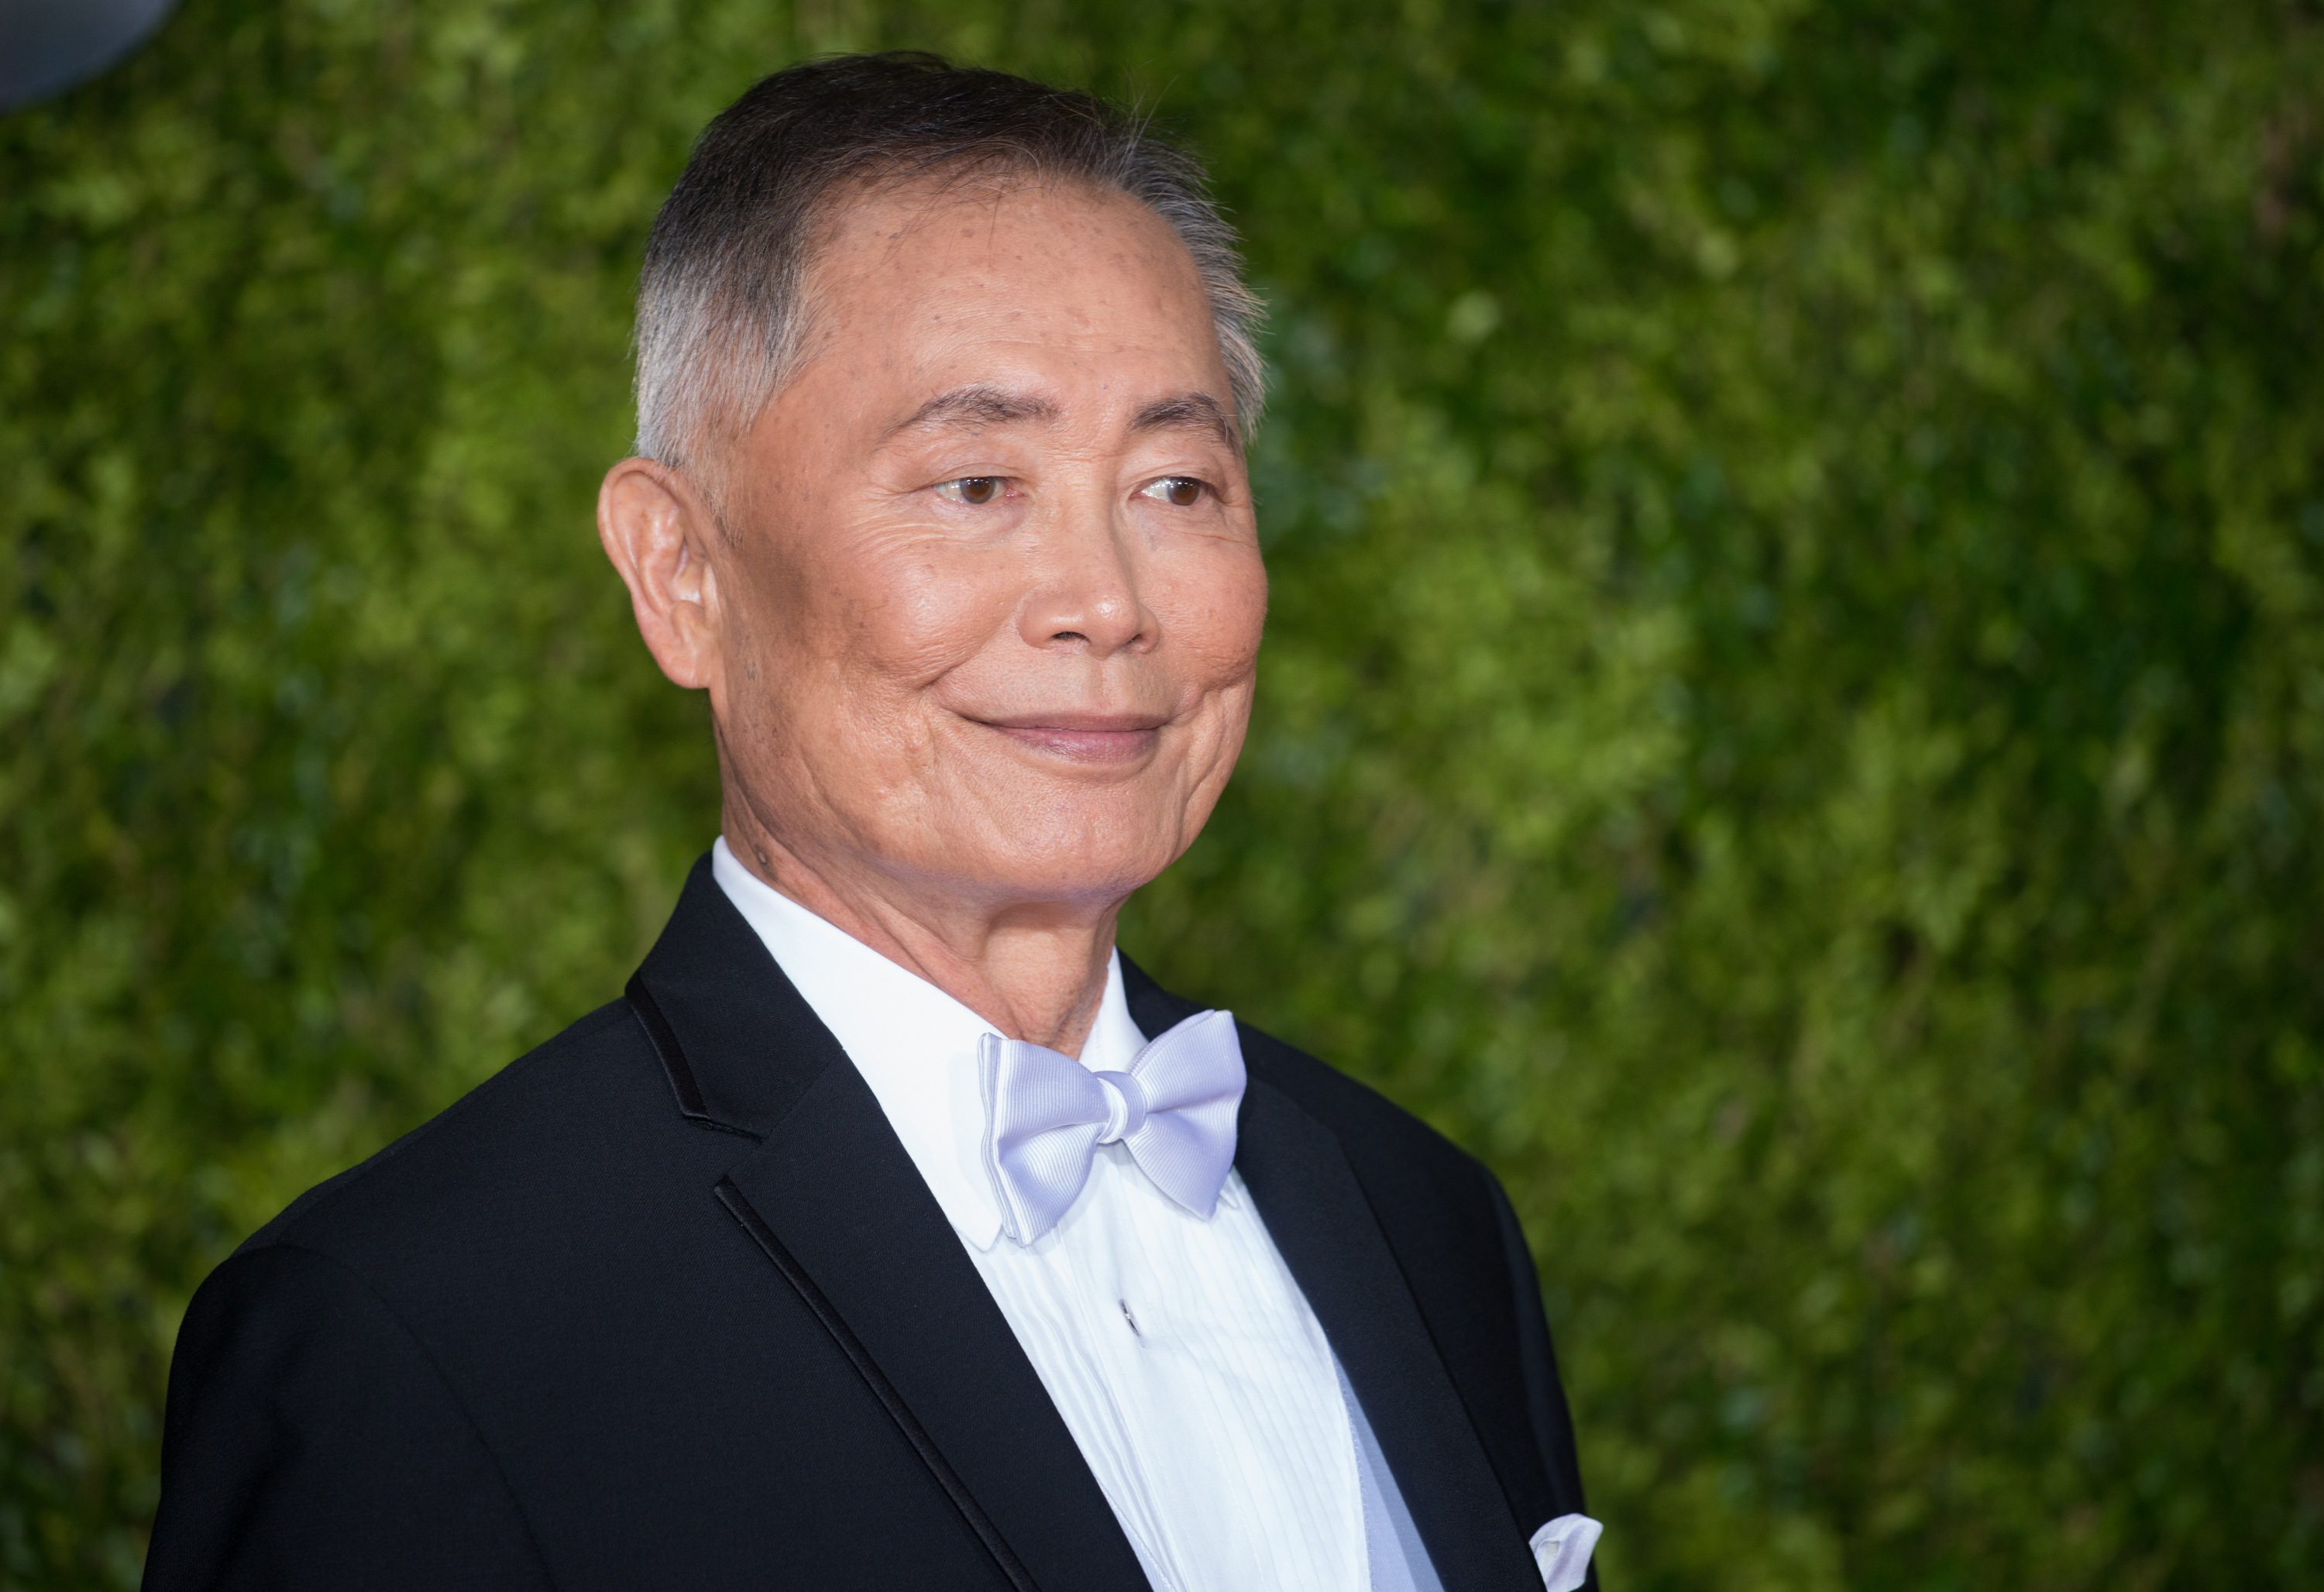 George Takei at the Tony Awards on June 7, 2015 in New York